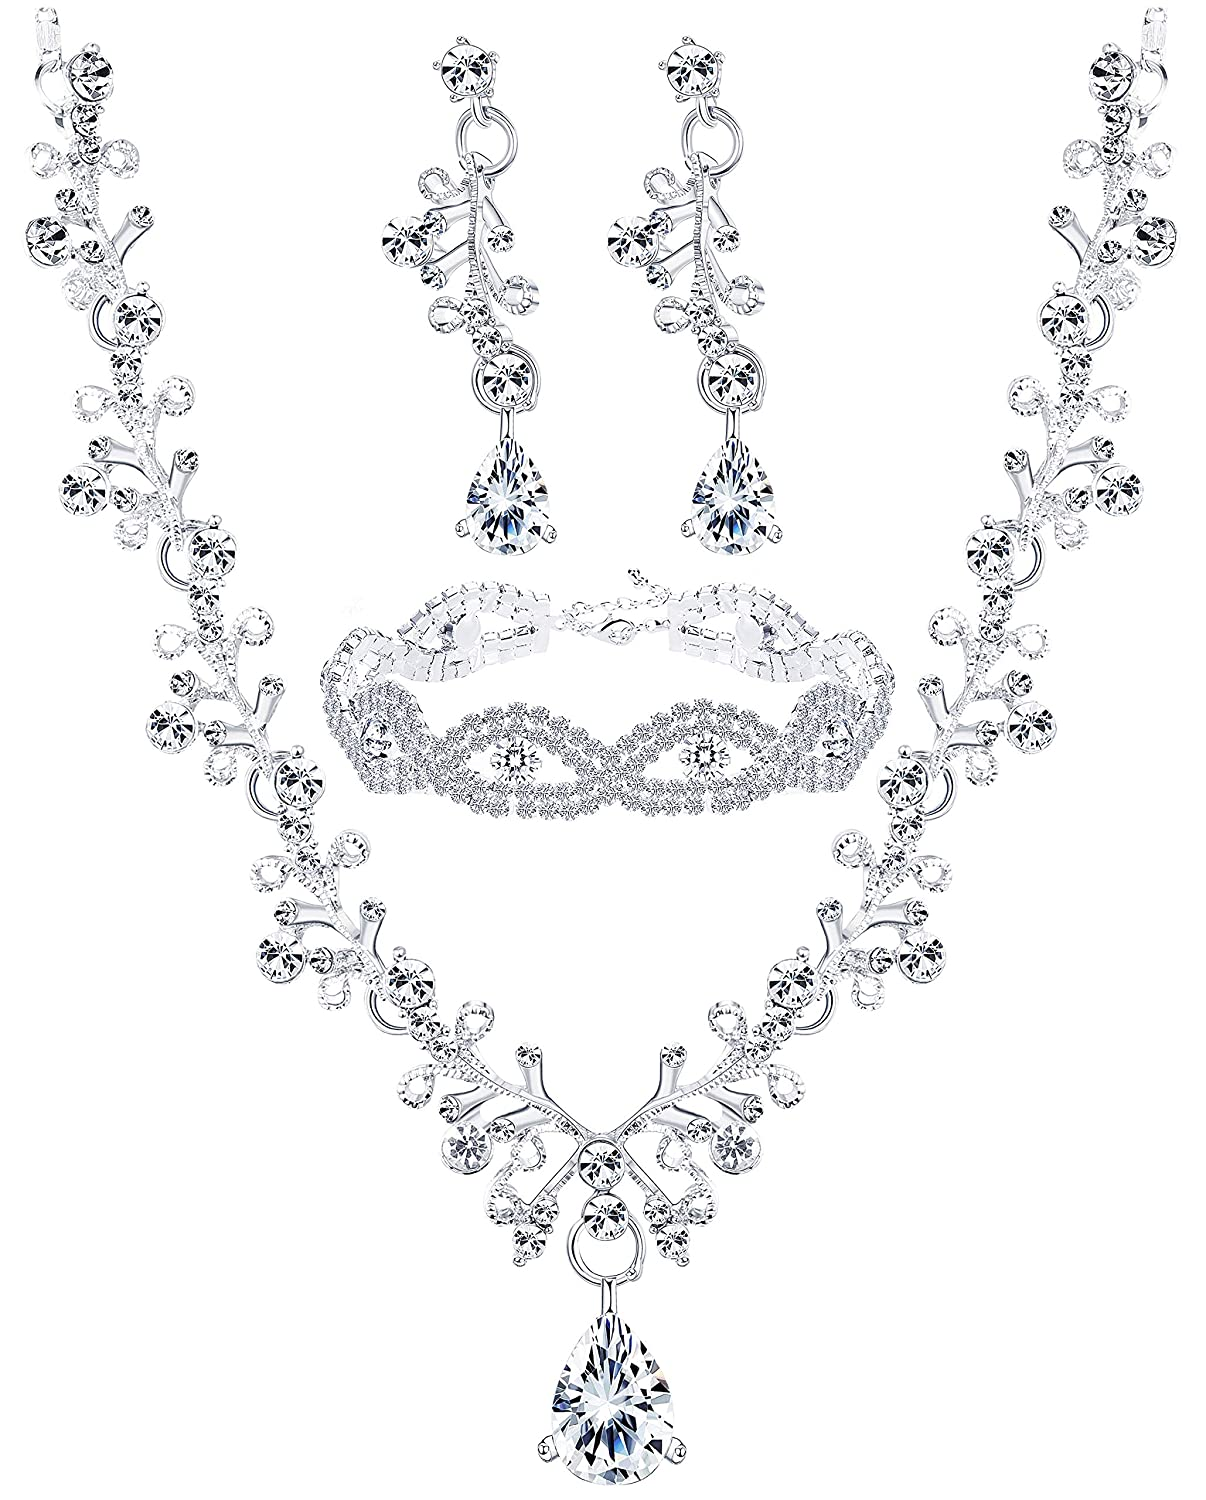 a08be5655 Amazon.com: Finrezio Wedding Bridal Jewelry Set Crystal Necklace Earrings  Bracelet Sets for Women Gift: Jewelry